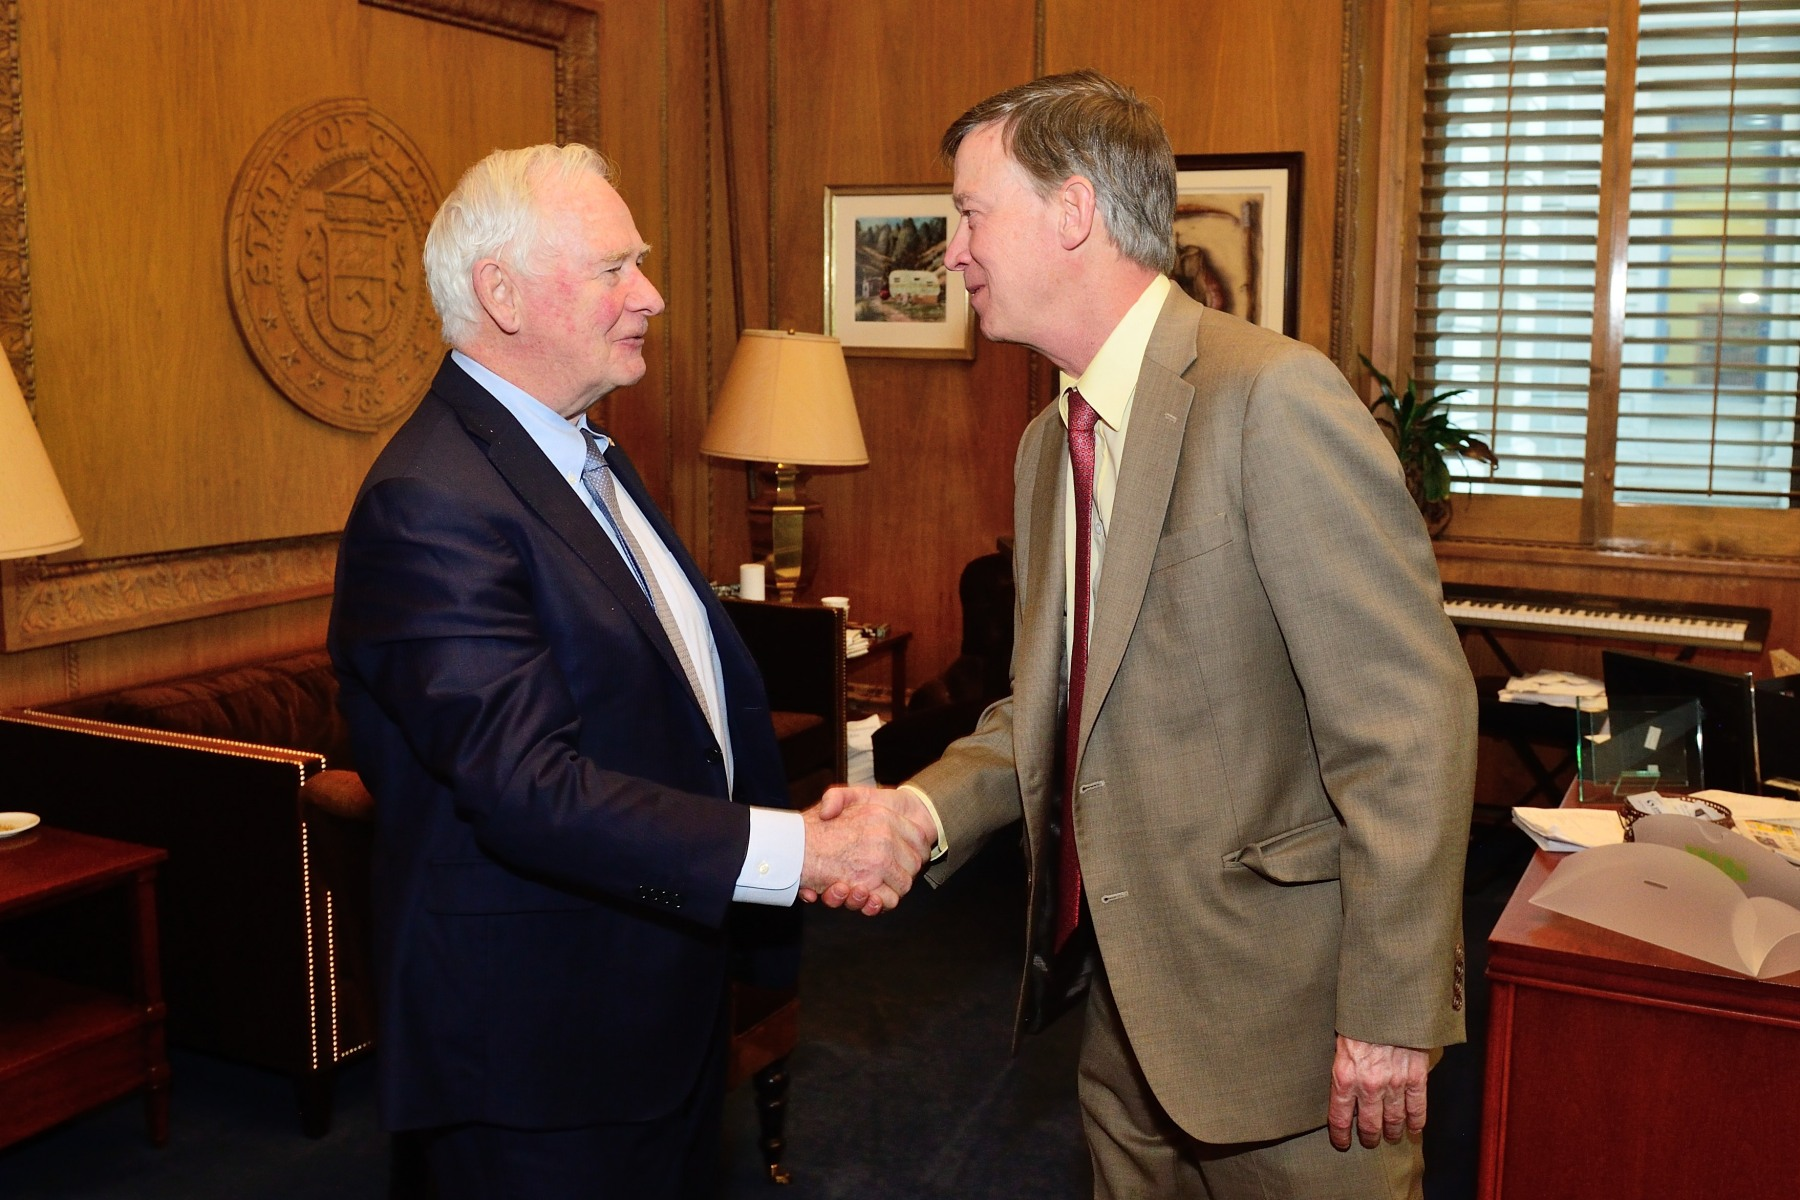 His Excellency concluded his visit to the United States with a meeting with the Honourable John Hickenlooper, Governor of Colorado.